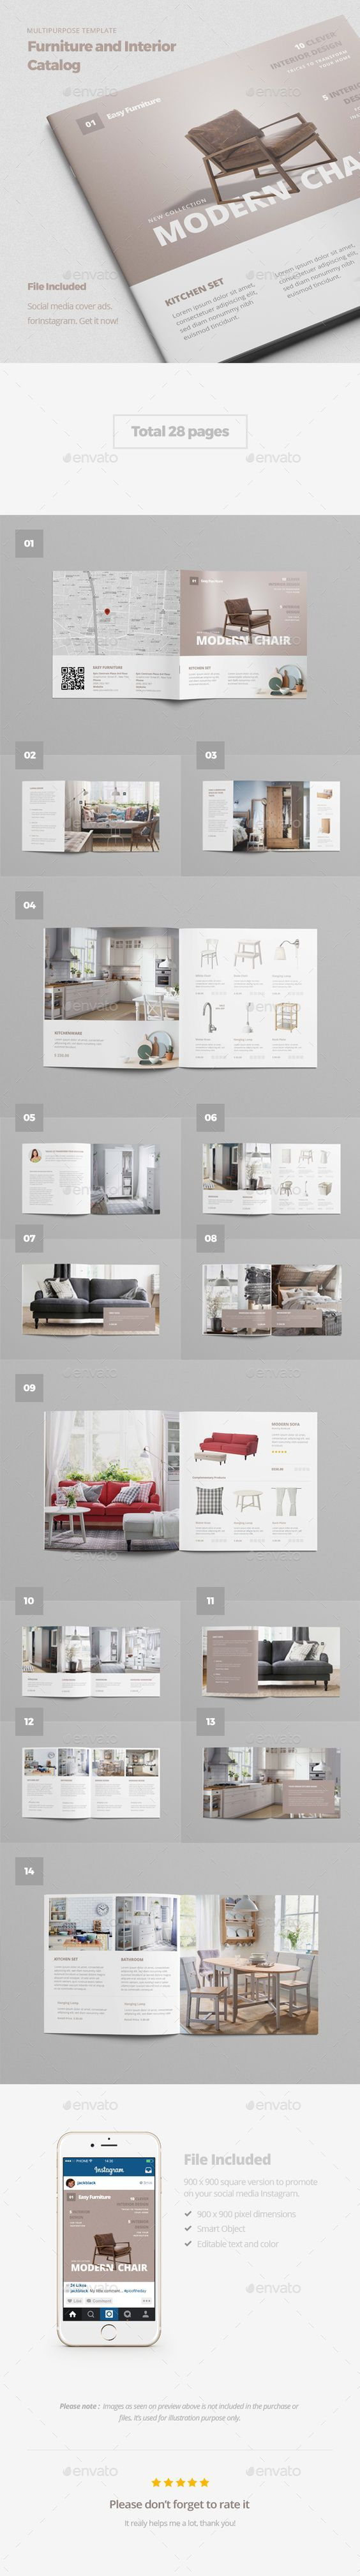 Furniture and Interior Catalog Brochure Template PSD  design Download   http   graphicriver. 25  beautiful Furniture catalog ideas on Pinterest   Product